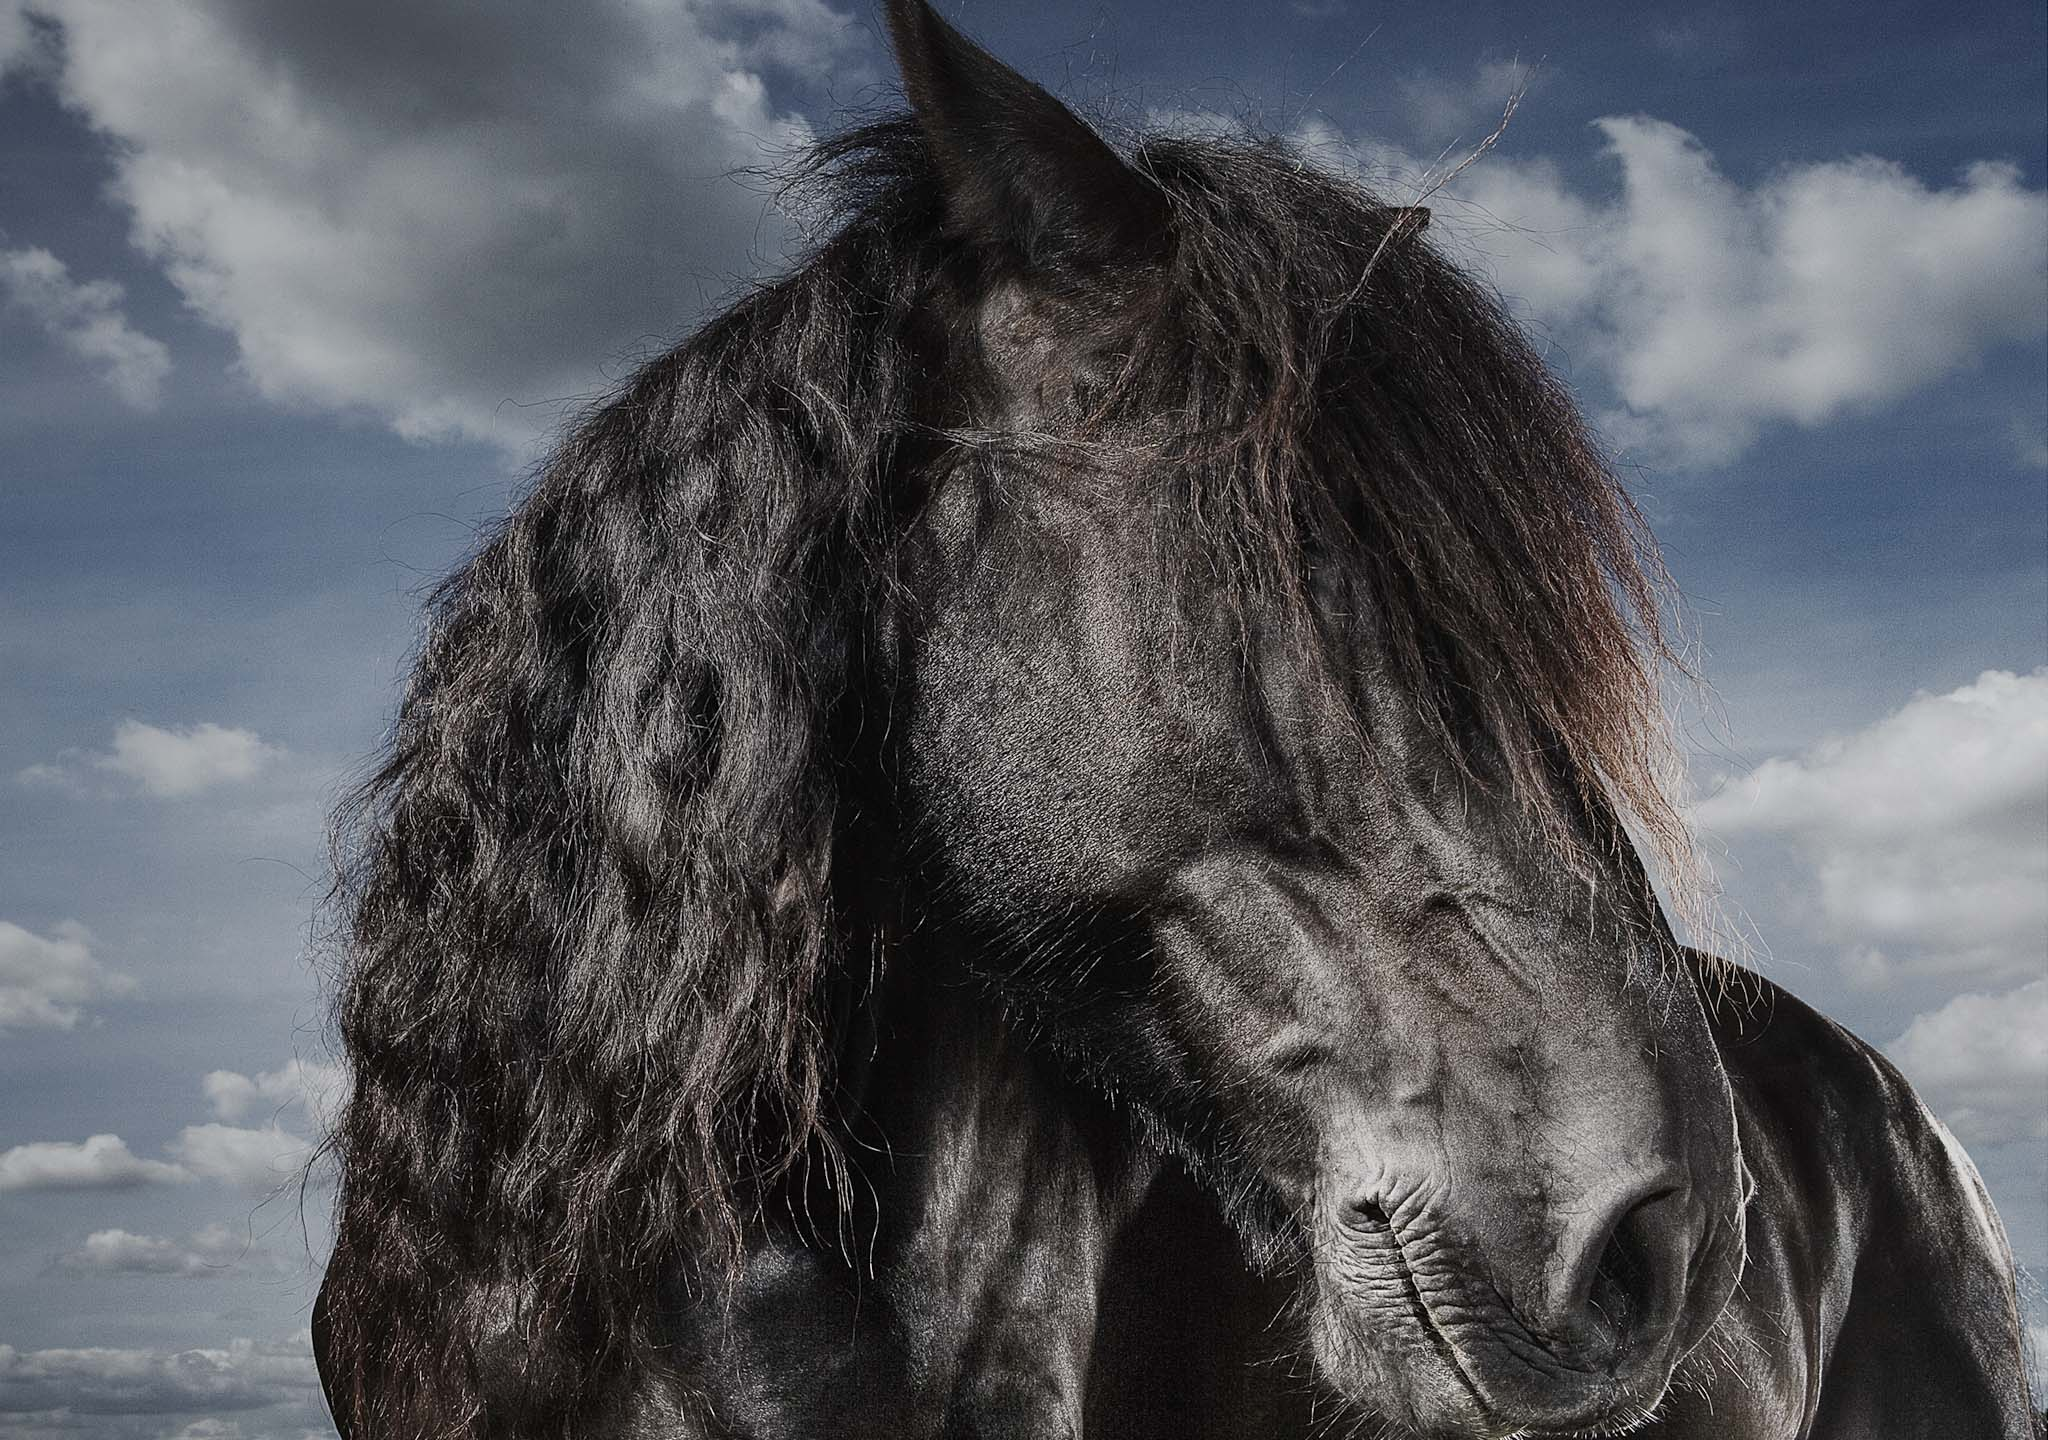 Alex Howe animal black horse profile portrait with shaggy hair on face and moody clouds